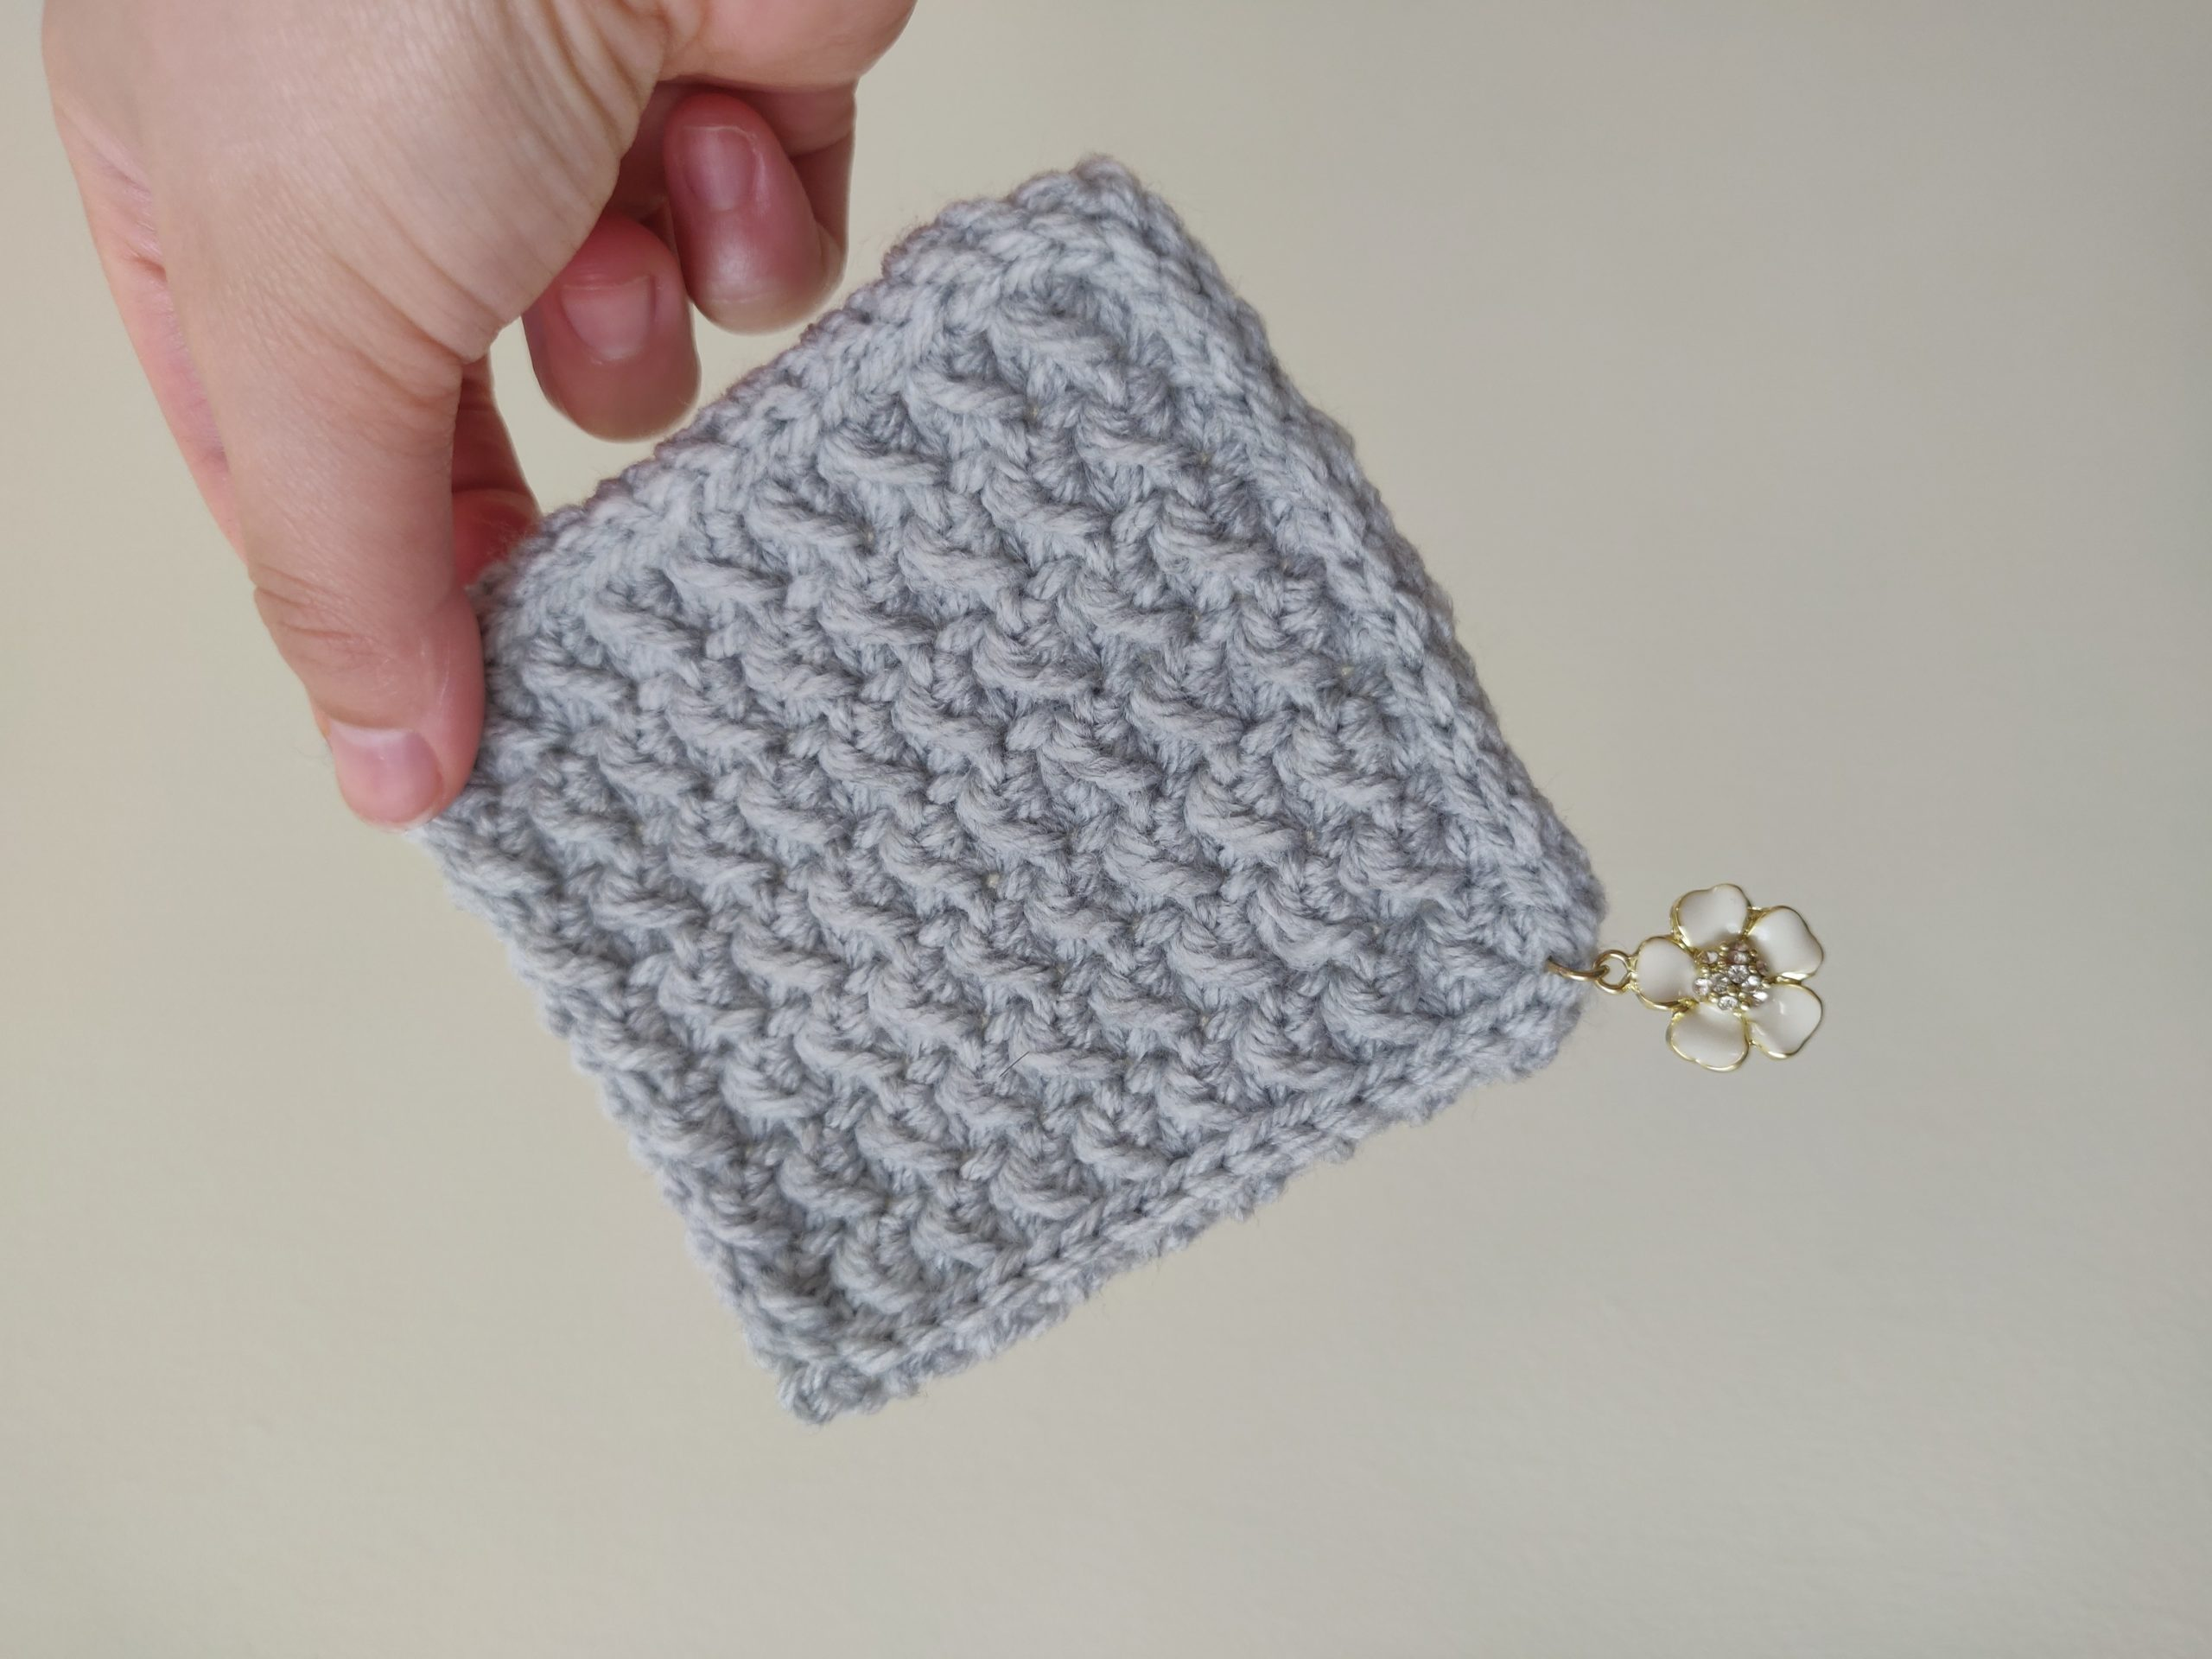 Crochet coaster with slip stitch edging and charm in the corner.